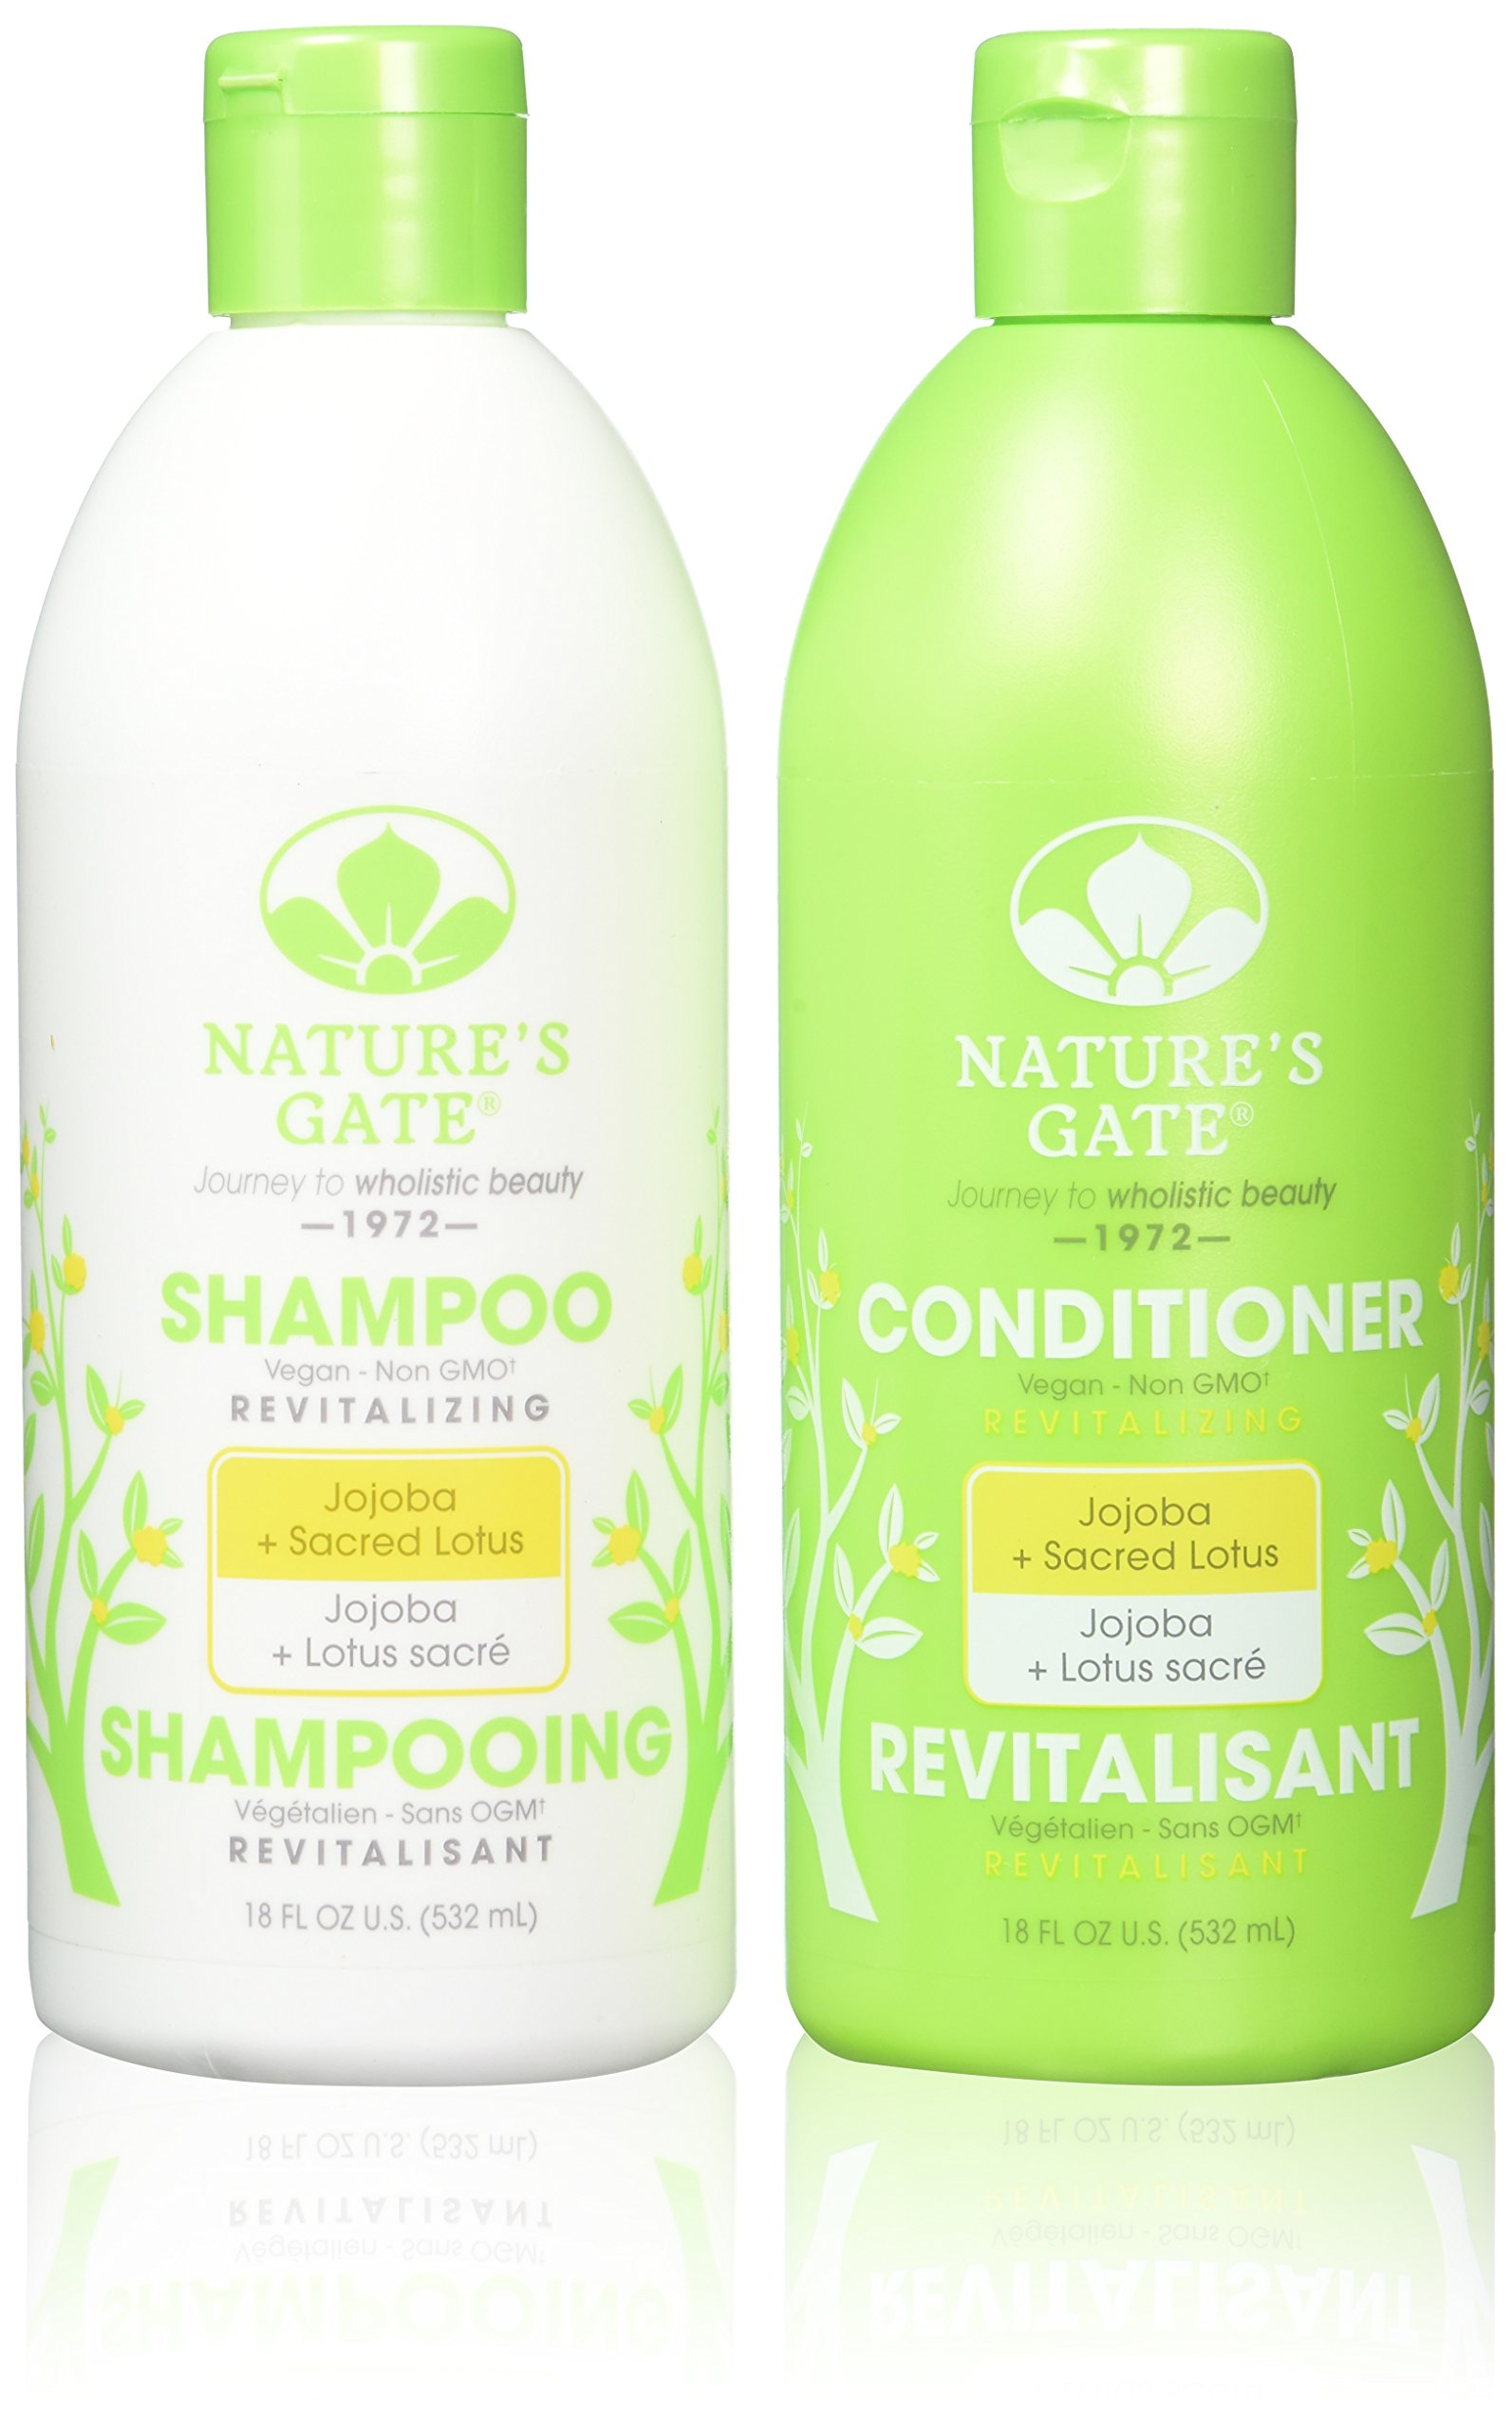 Natures Gate Natural Aloe Vera Velvet Daily Energizing Bubble Bath Foam Aromatherapy Pure Peppermint Essential Oil Pink Lotus Jojoba Revitalizing Duo Set Shampoo Conditioner 18 Ounce Each